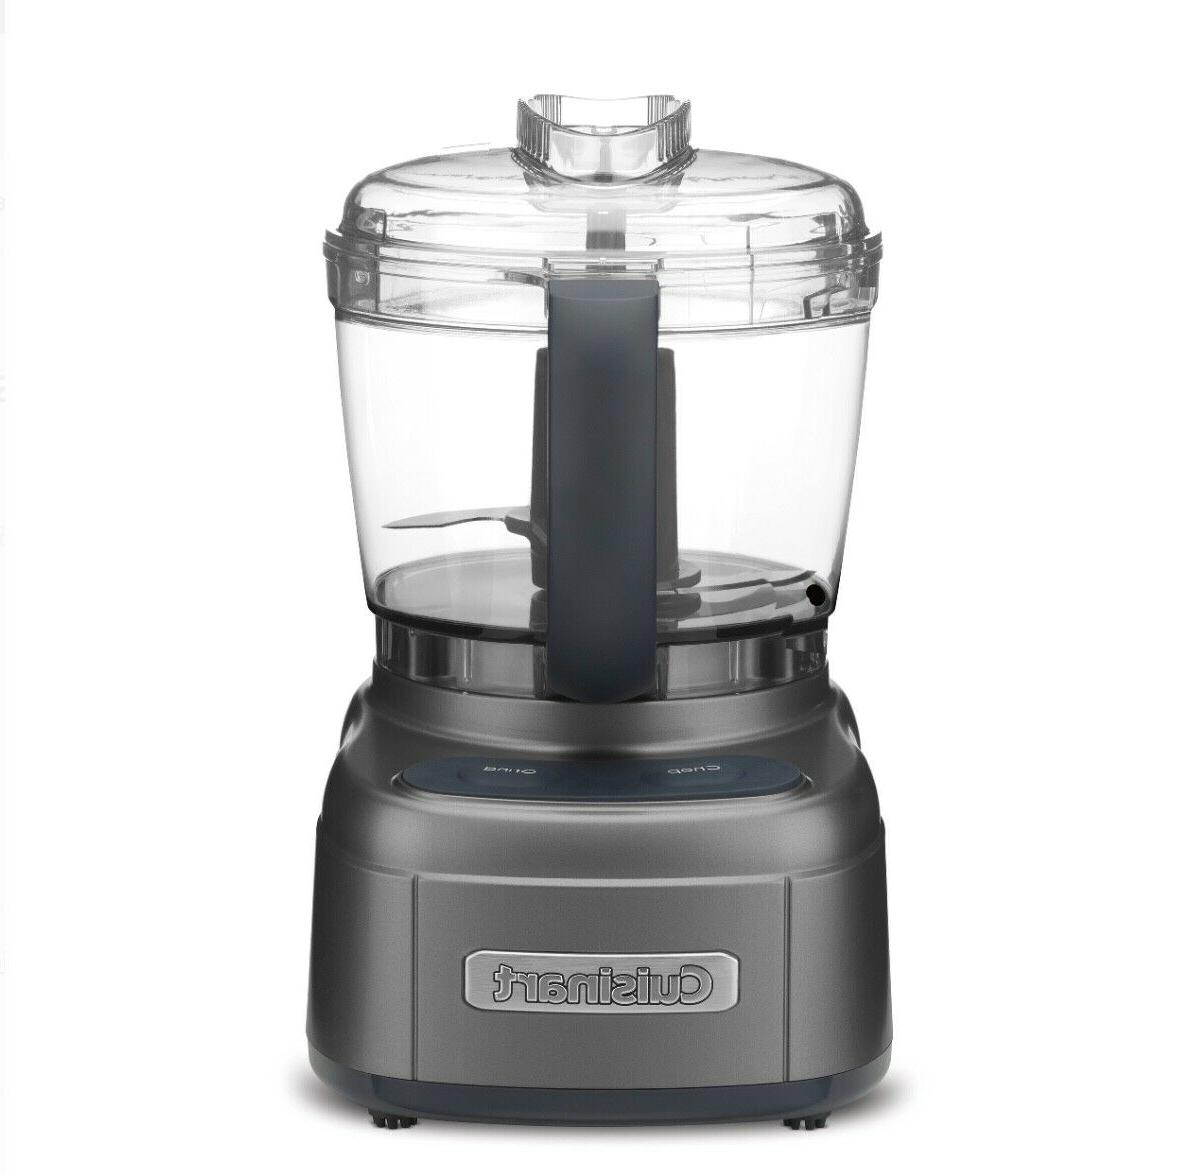 Cuisinart Food Processors Elemental 4-Cup Chopper